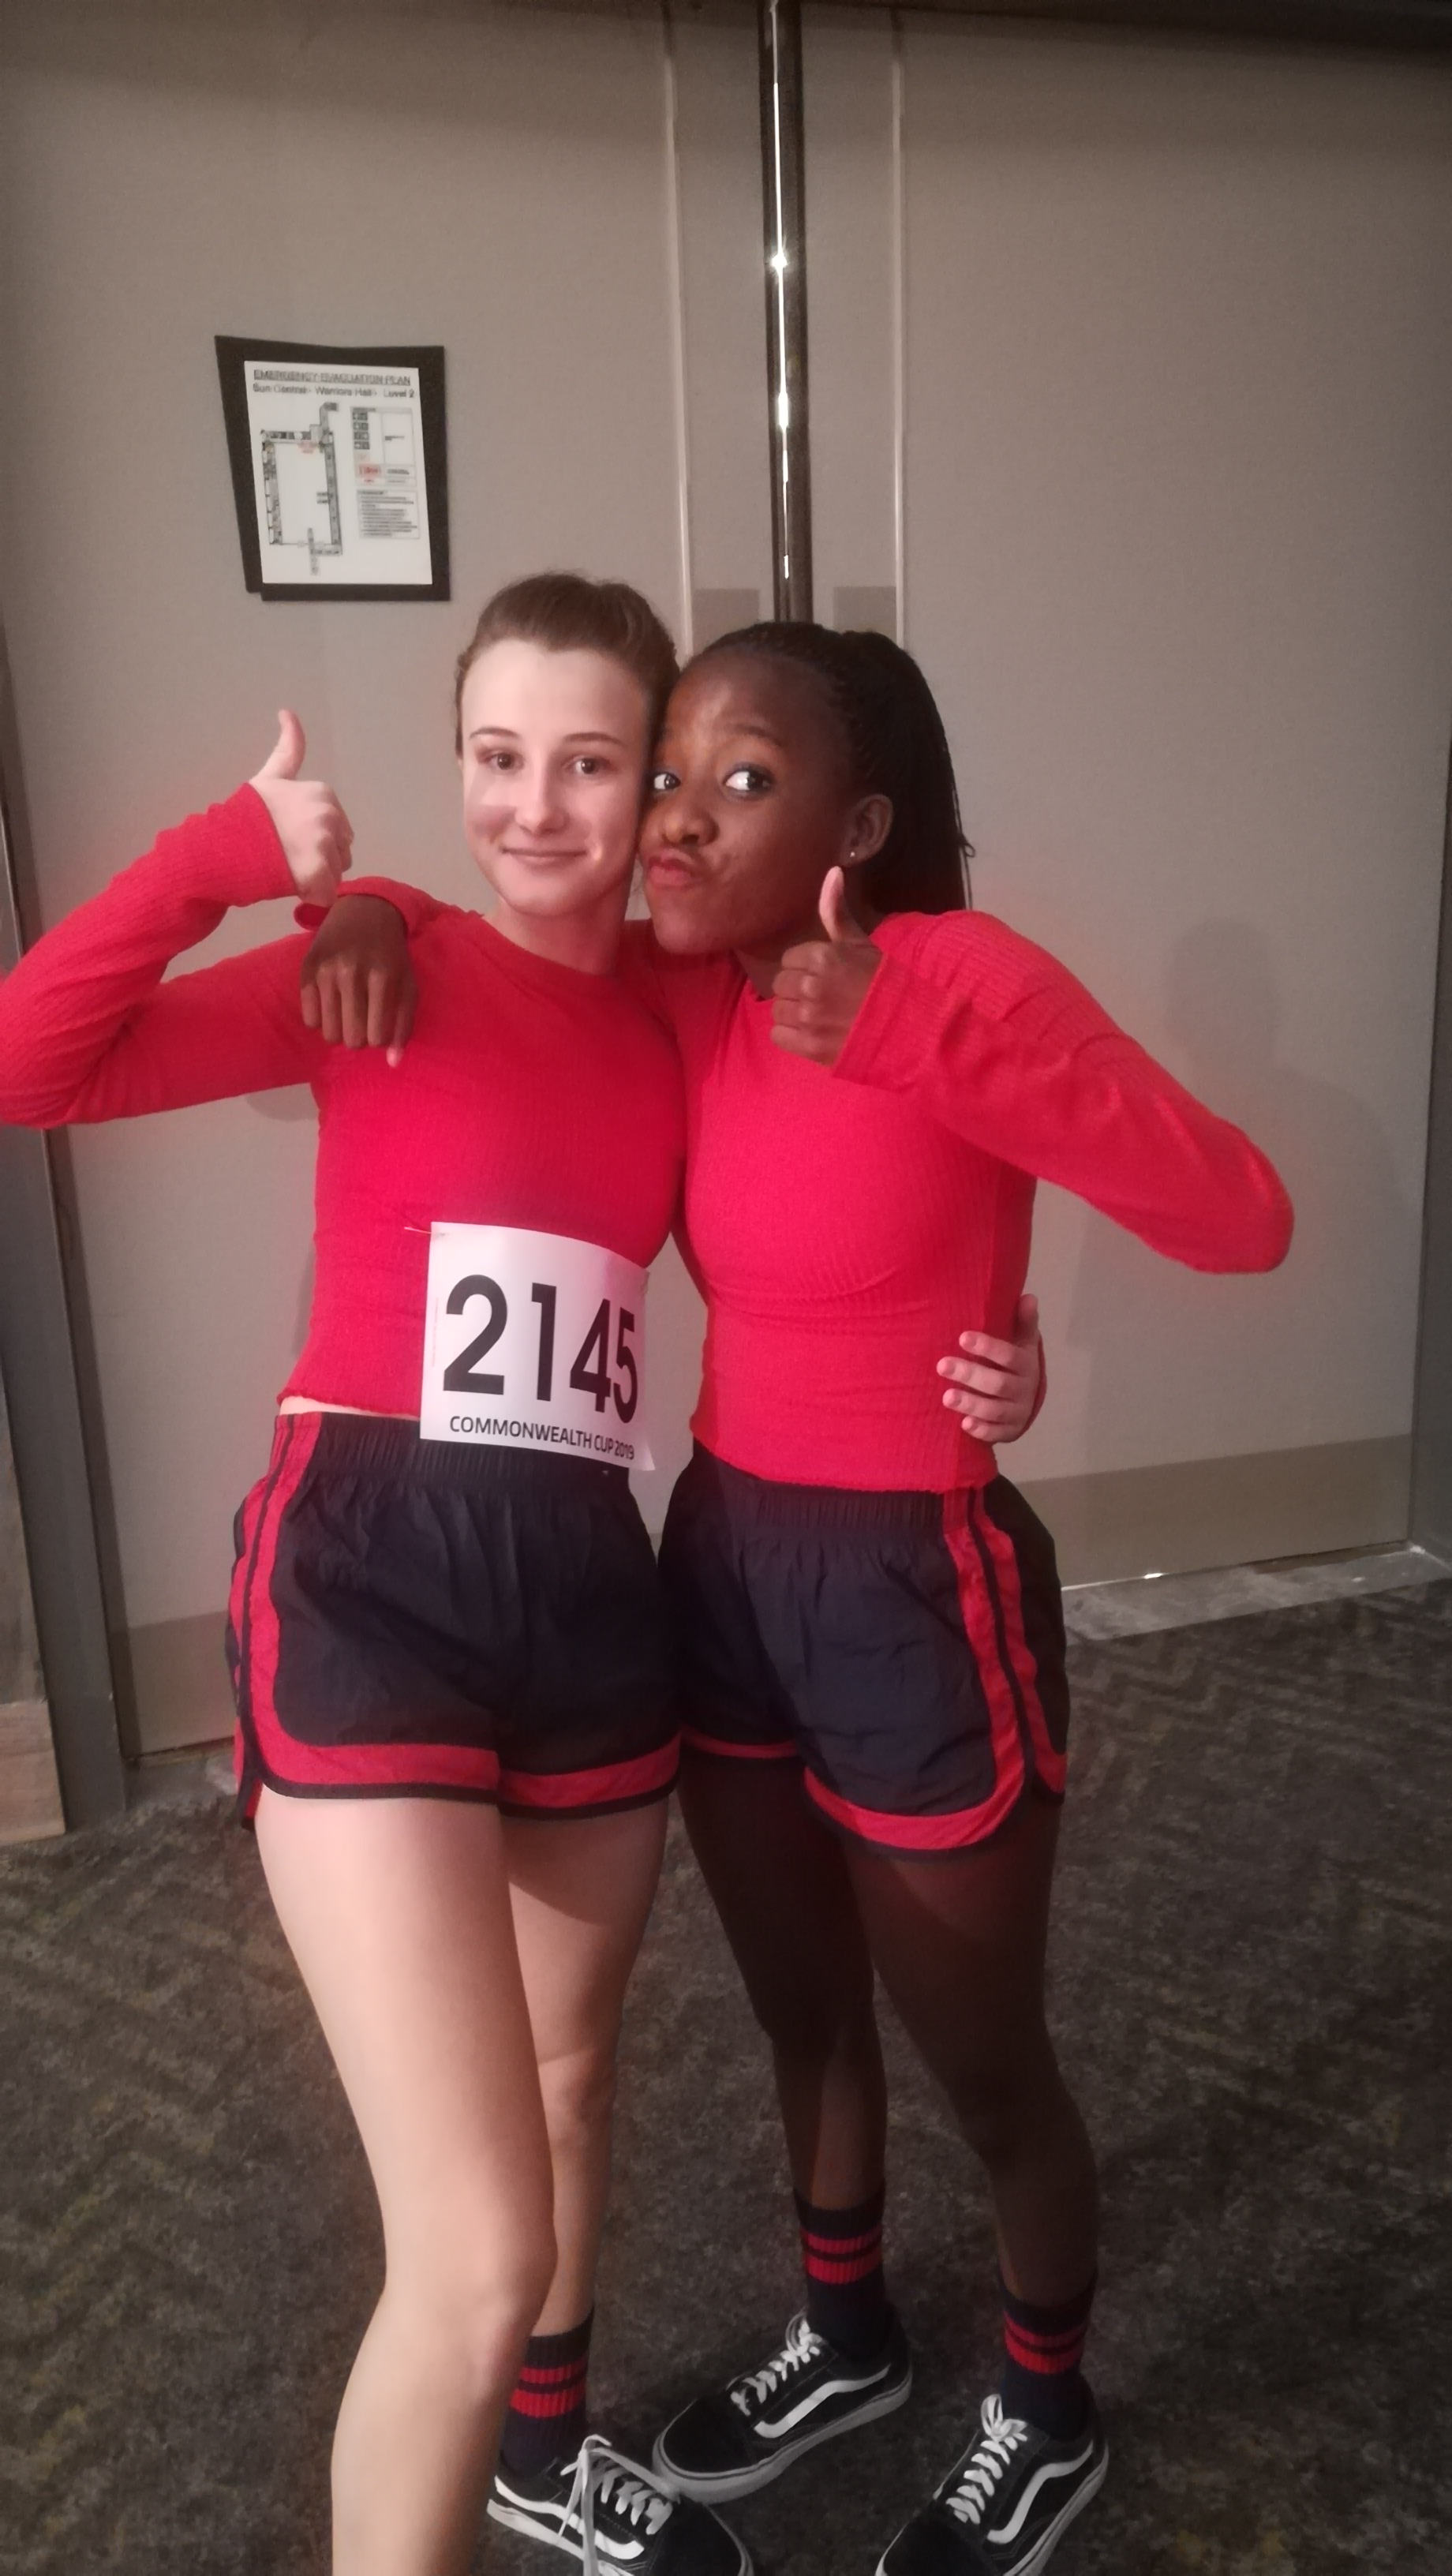 Sam and Babs placing 4th for the Street Dance Show duo.